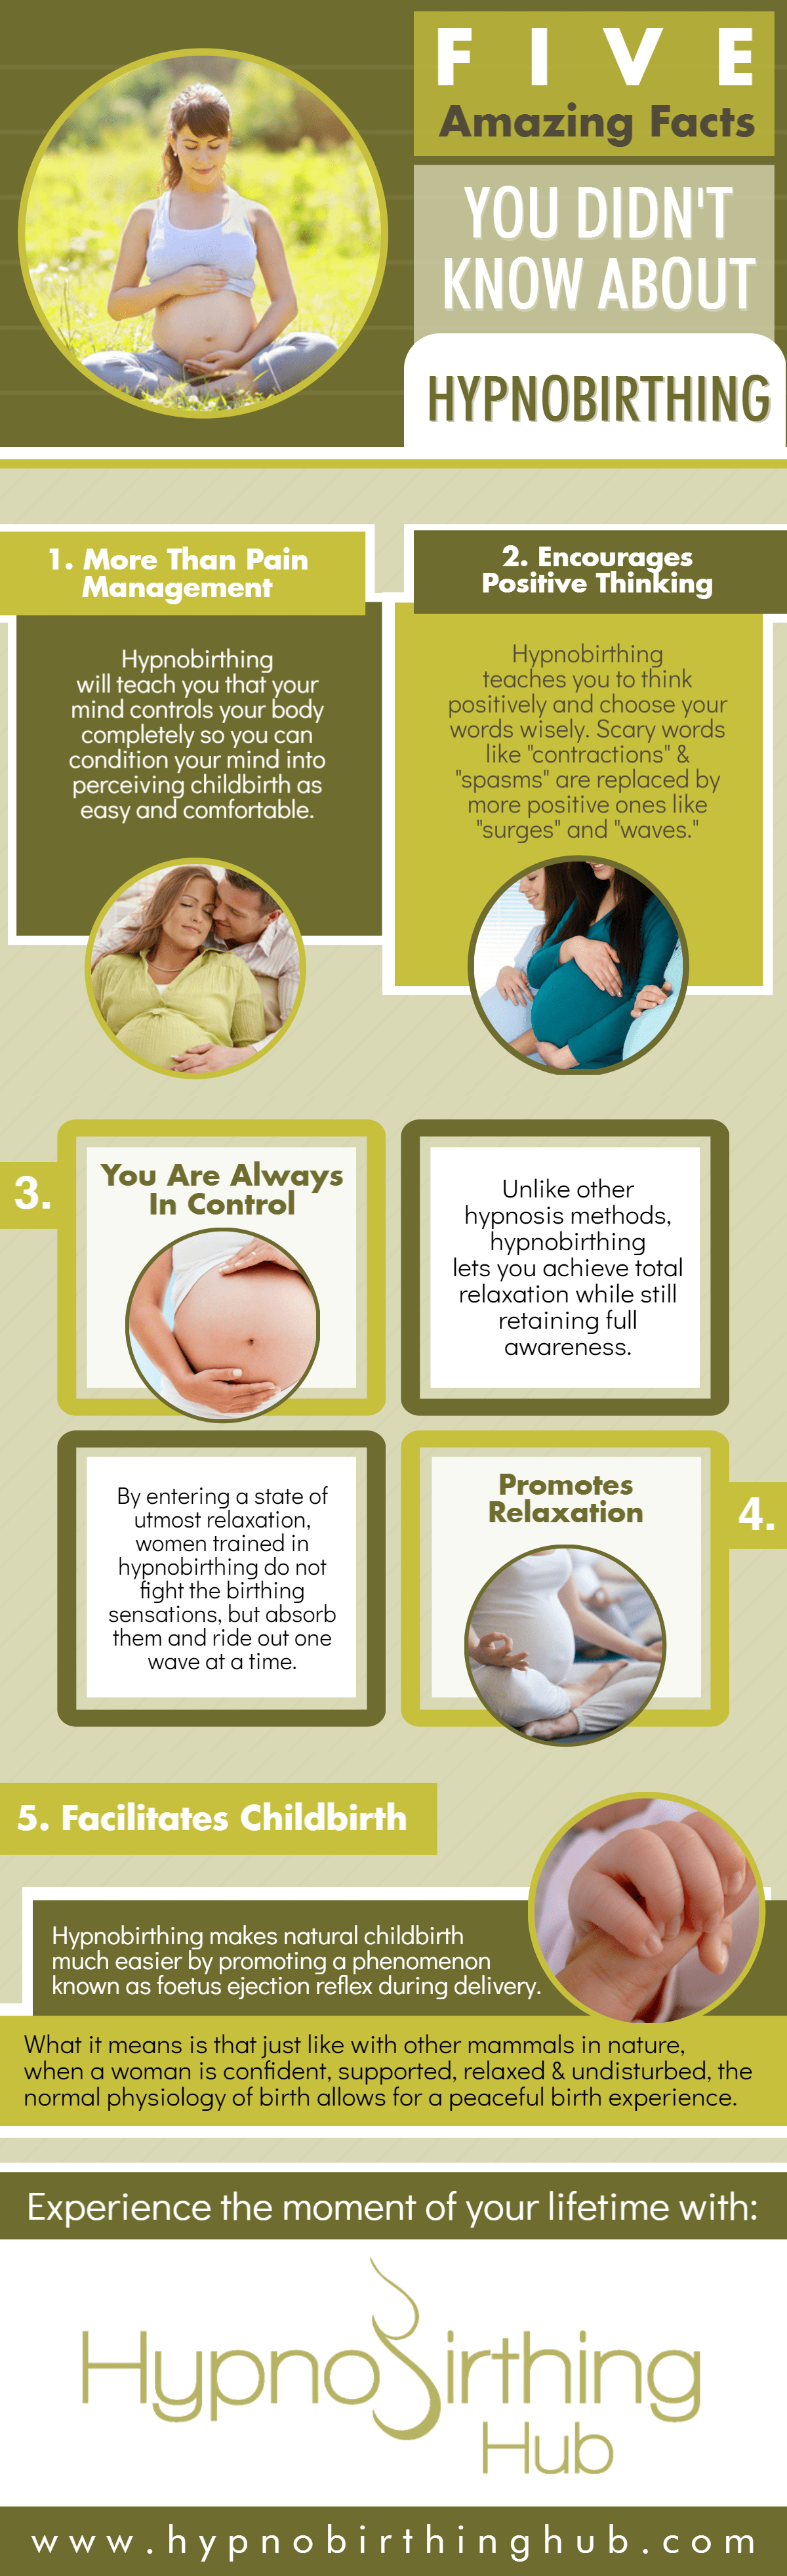 Five Amazing Facts You Didn't Know About Hypnbirthing Infographic